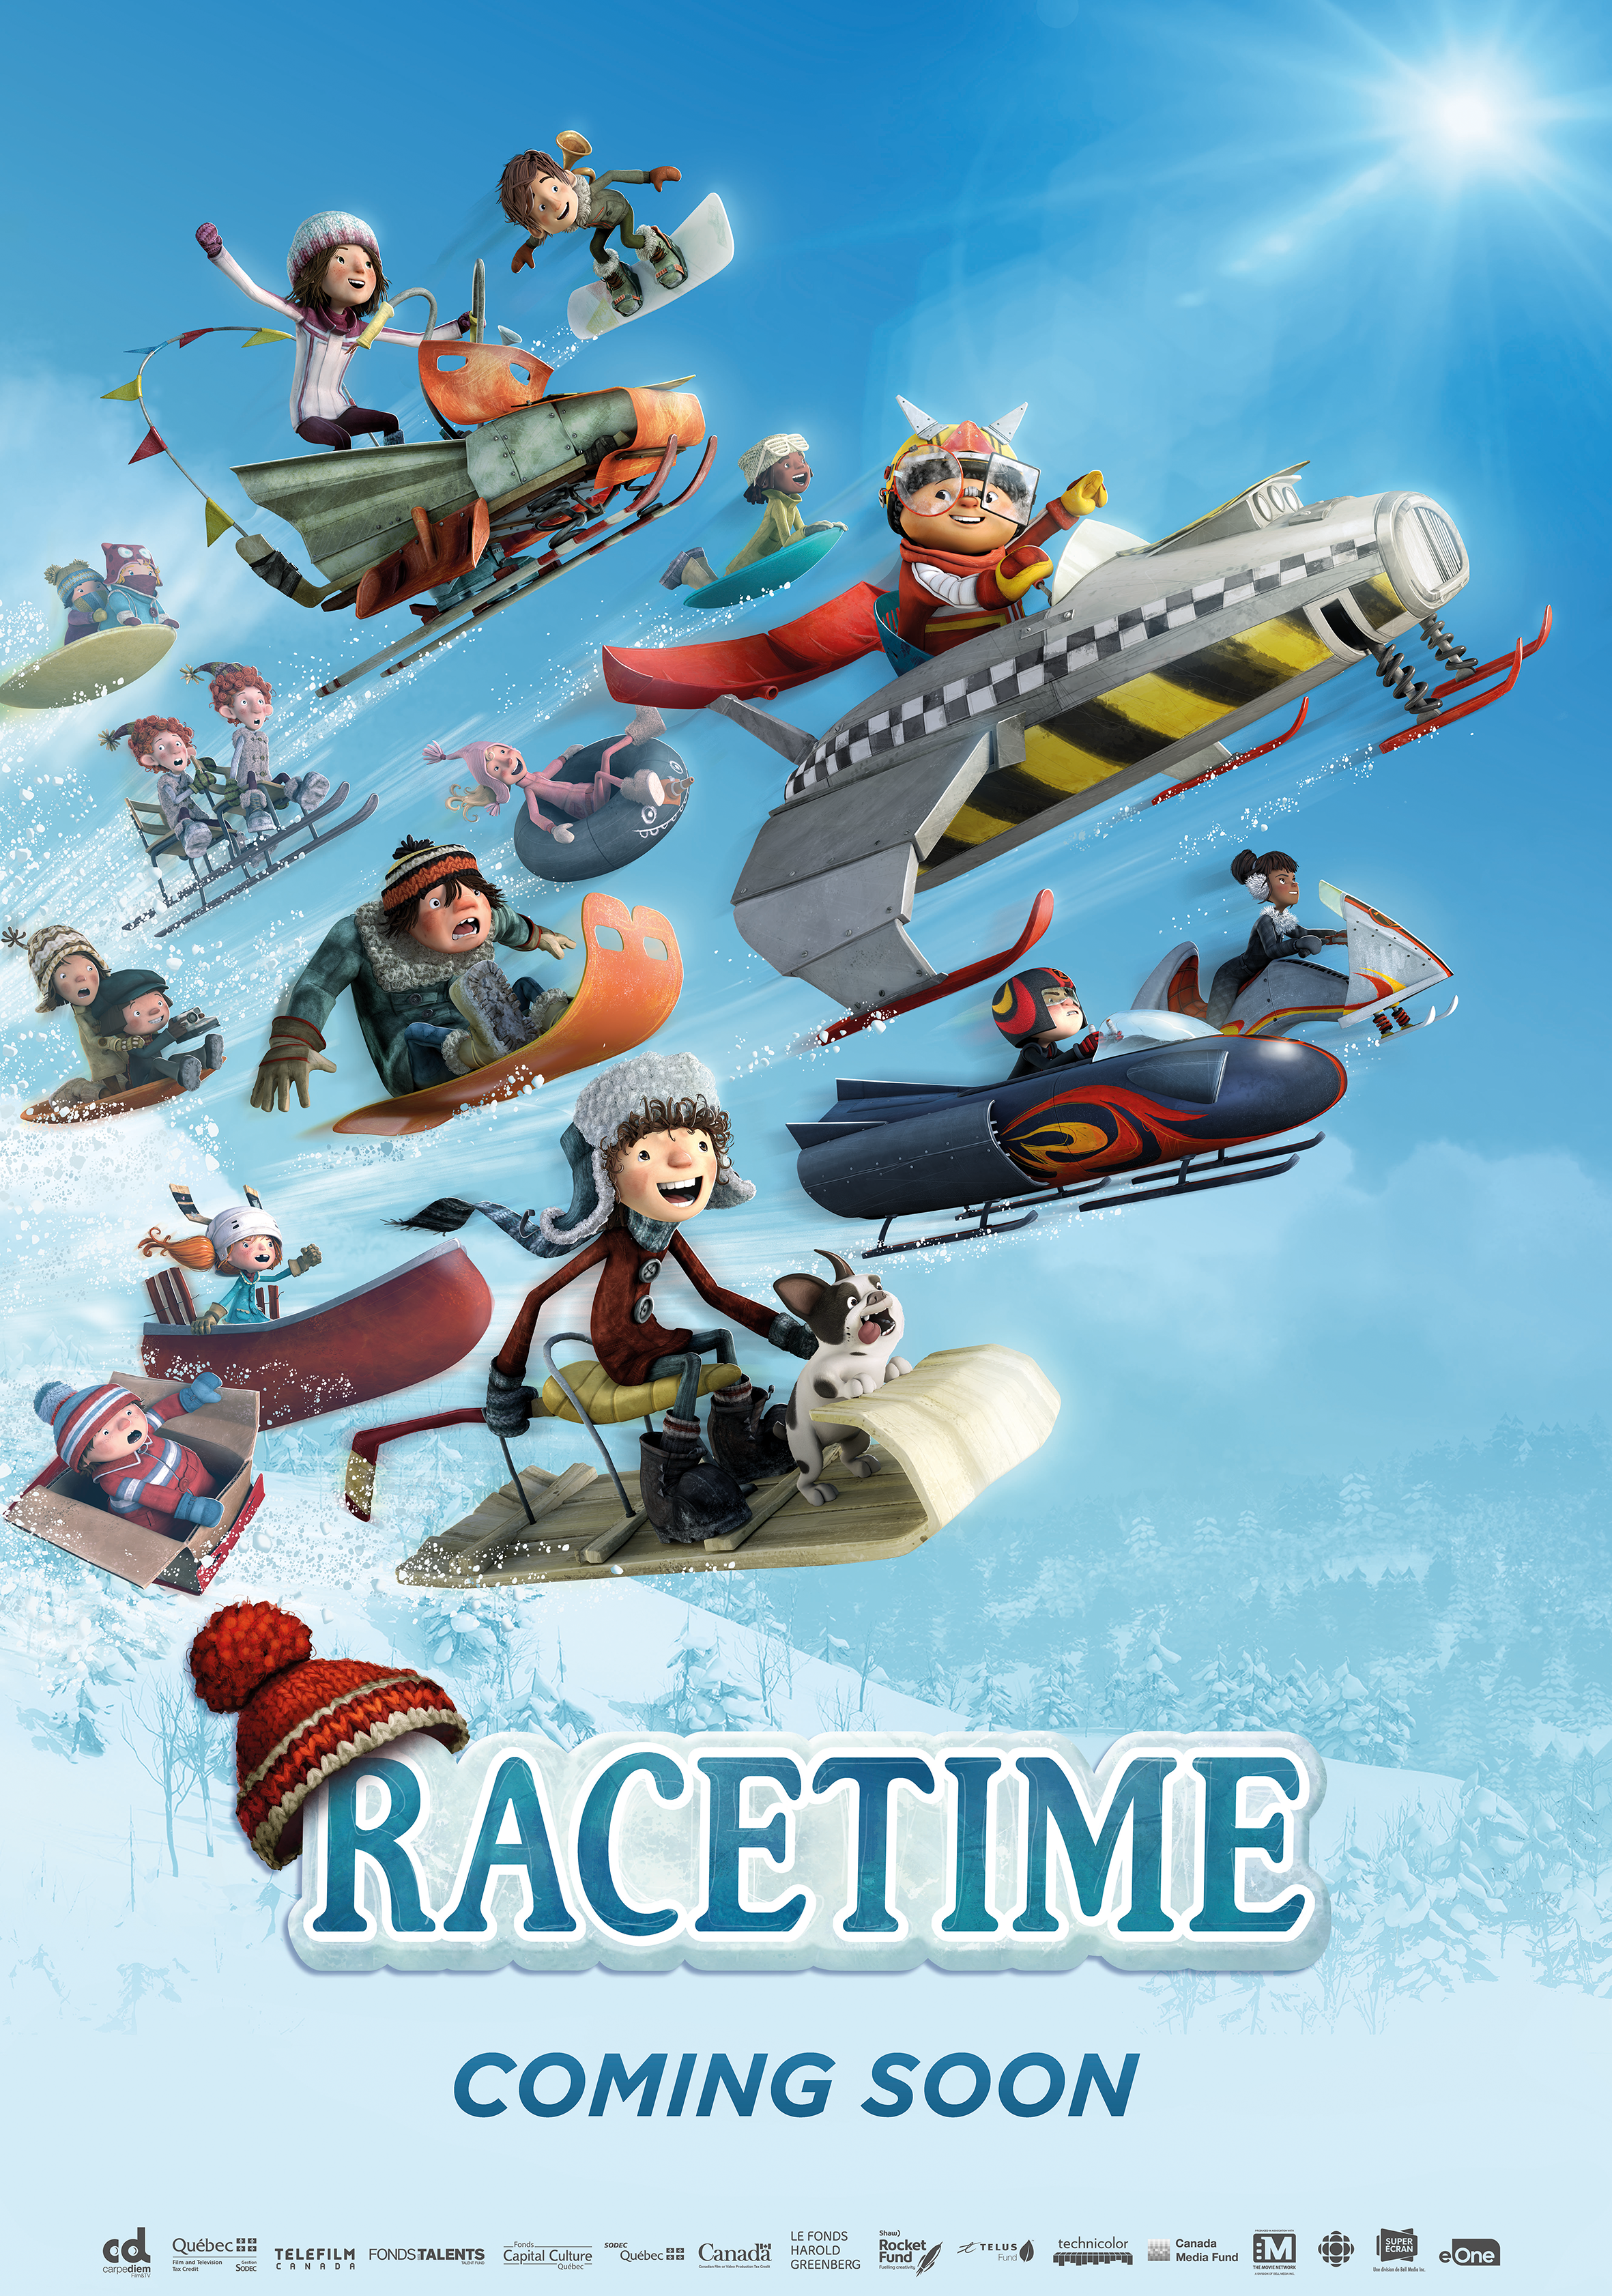 The official website for Racetime, the movie!